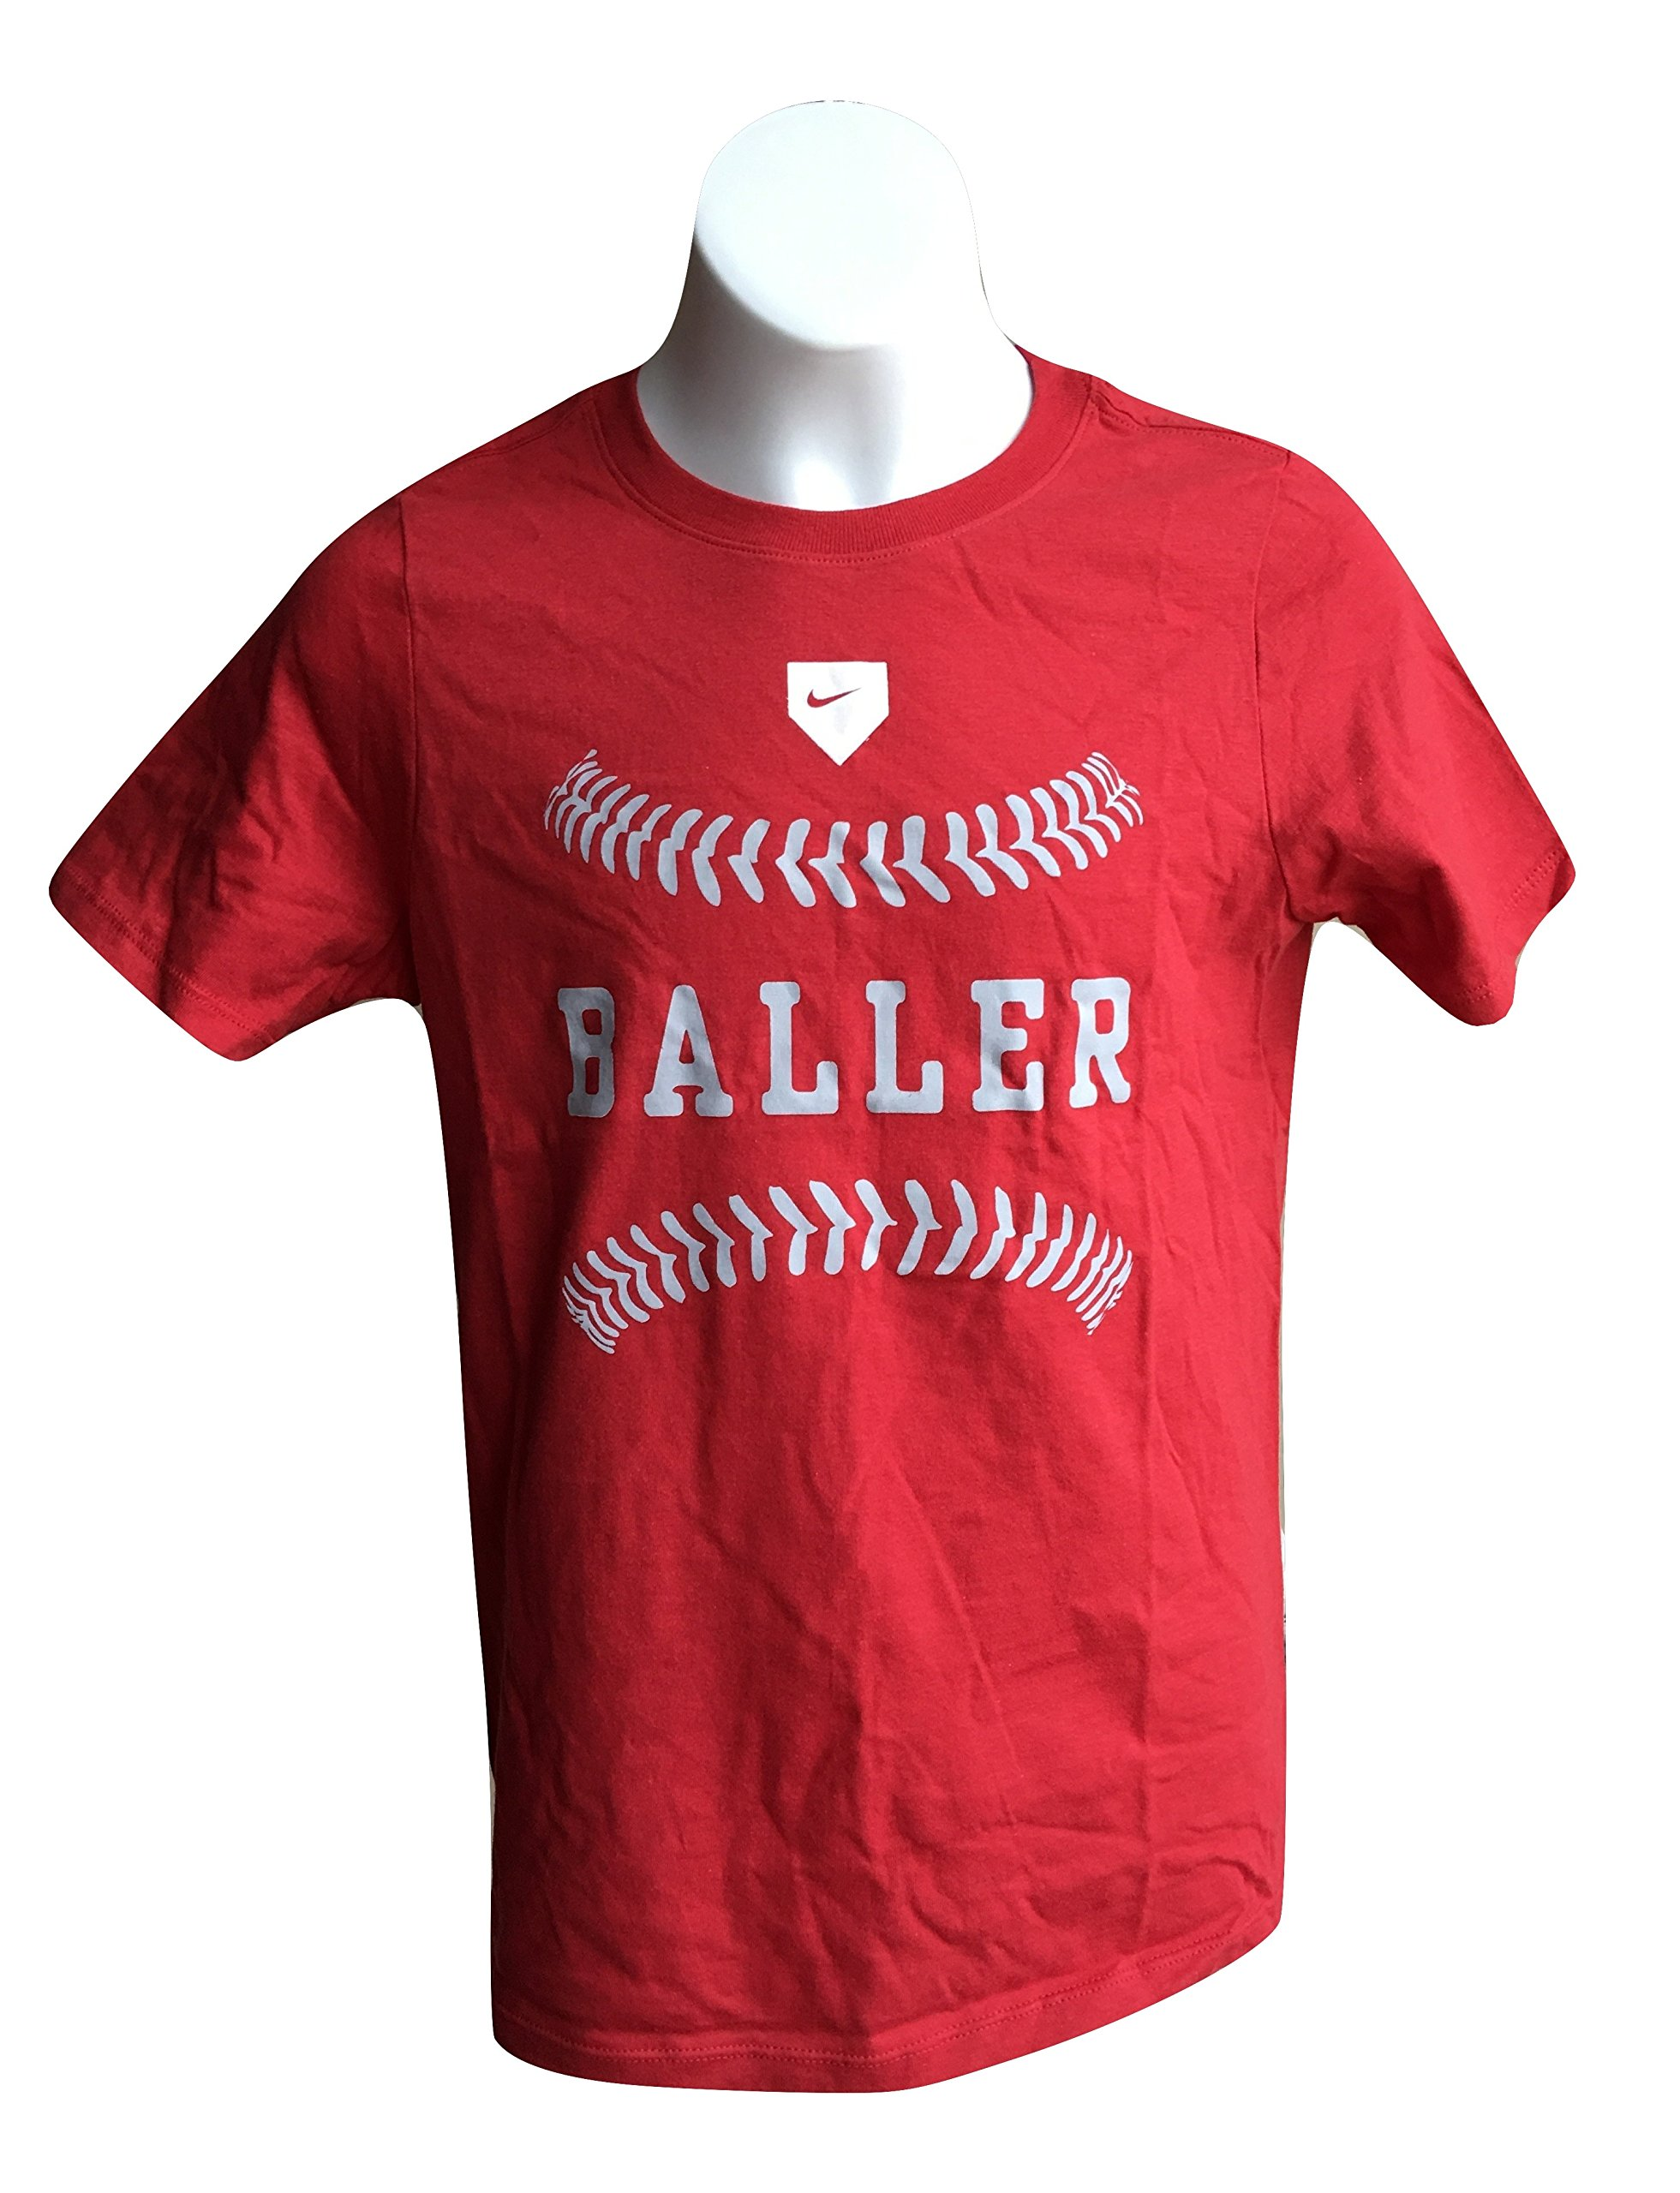 Nike Boy's Graphic Tee Shirt Baller Red Crewneck T-Shirt 943057-657 Medium